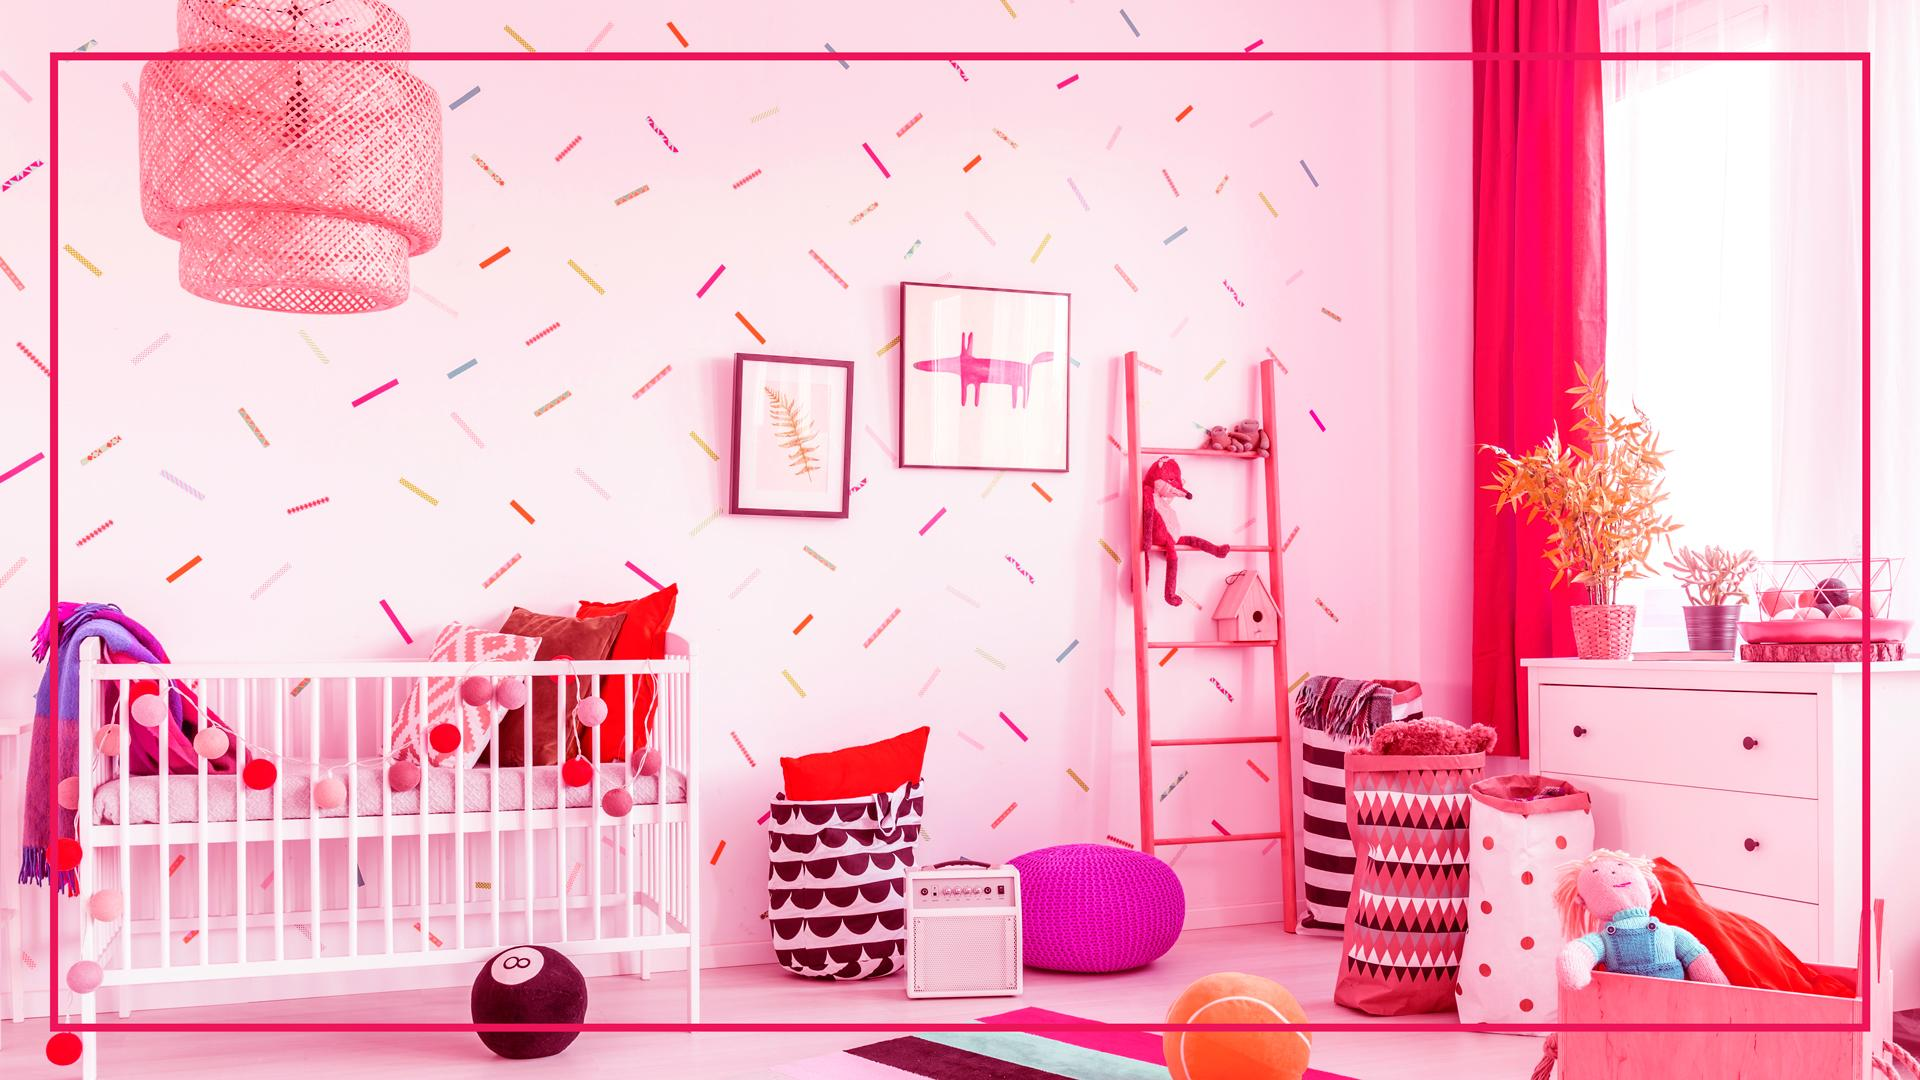 Black Friday Deals On Nursery Kids Room Decor For Your Next Redesign